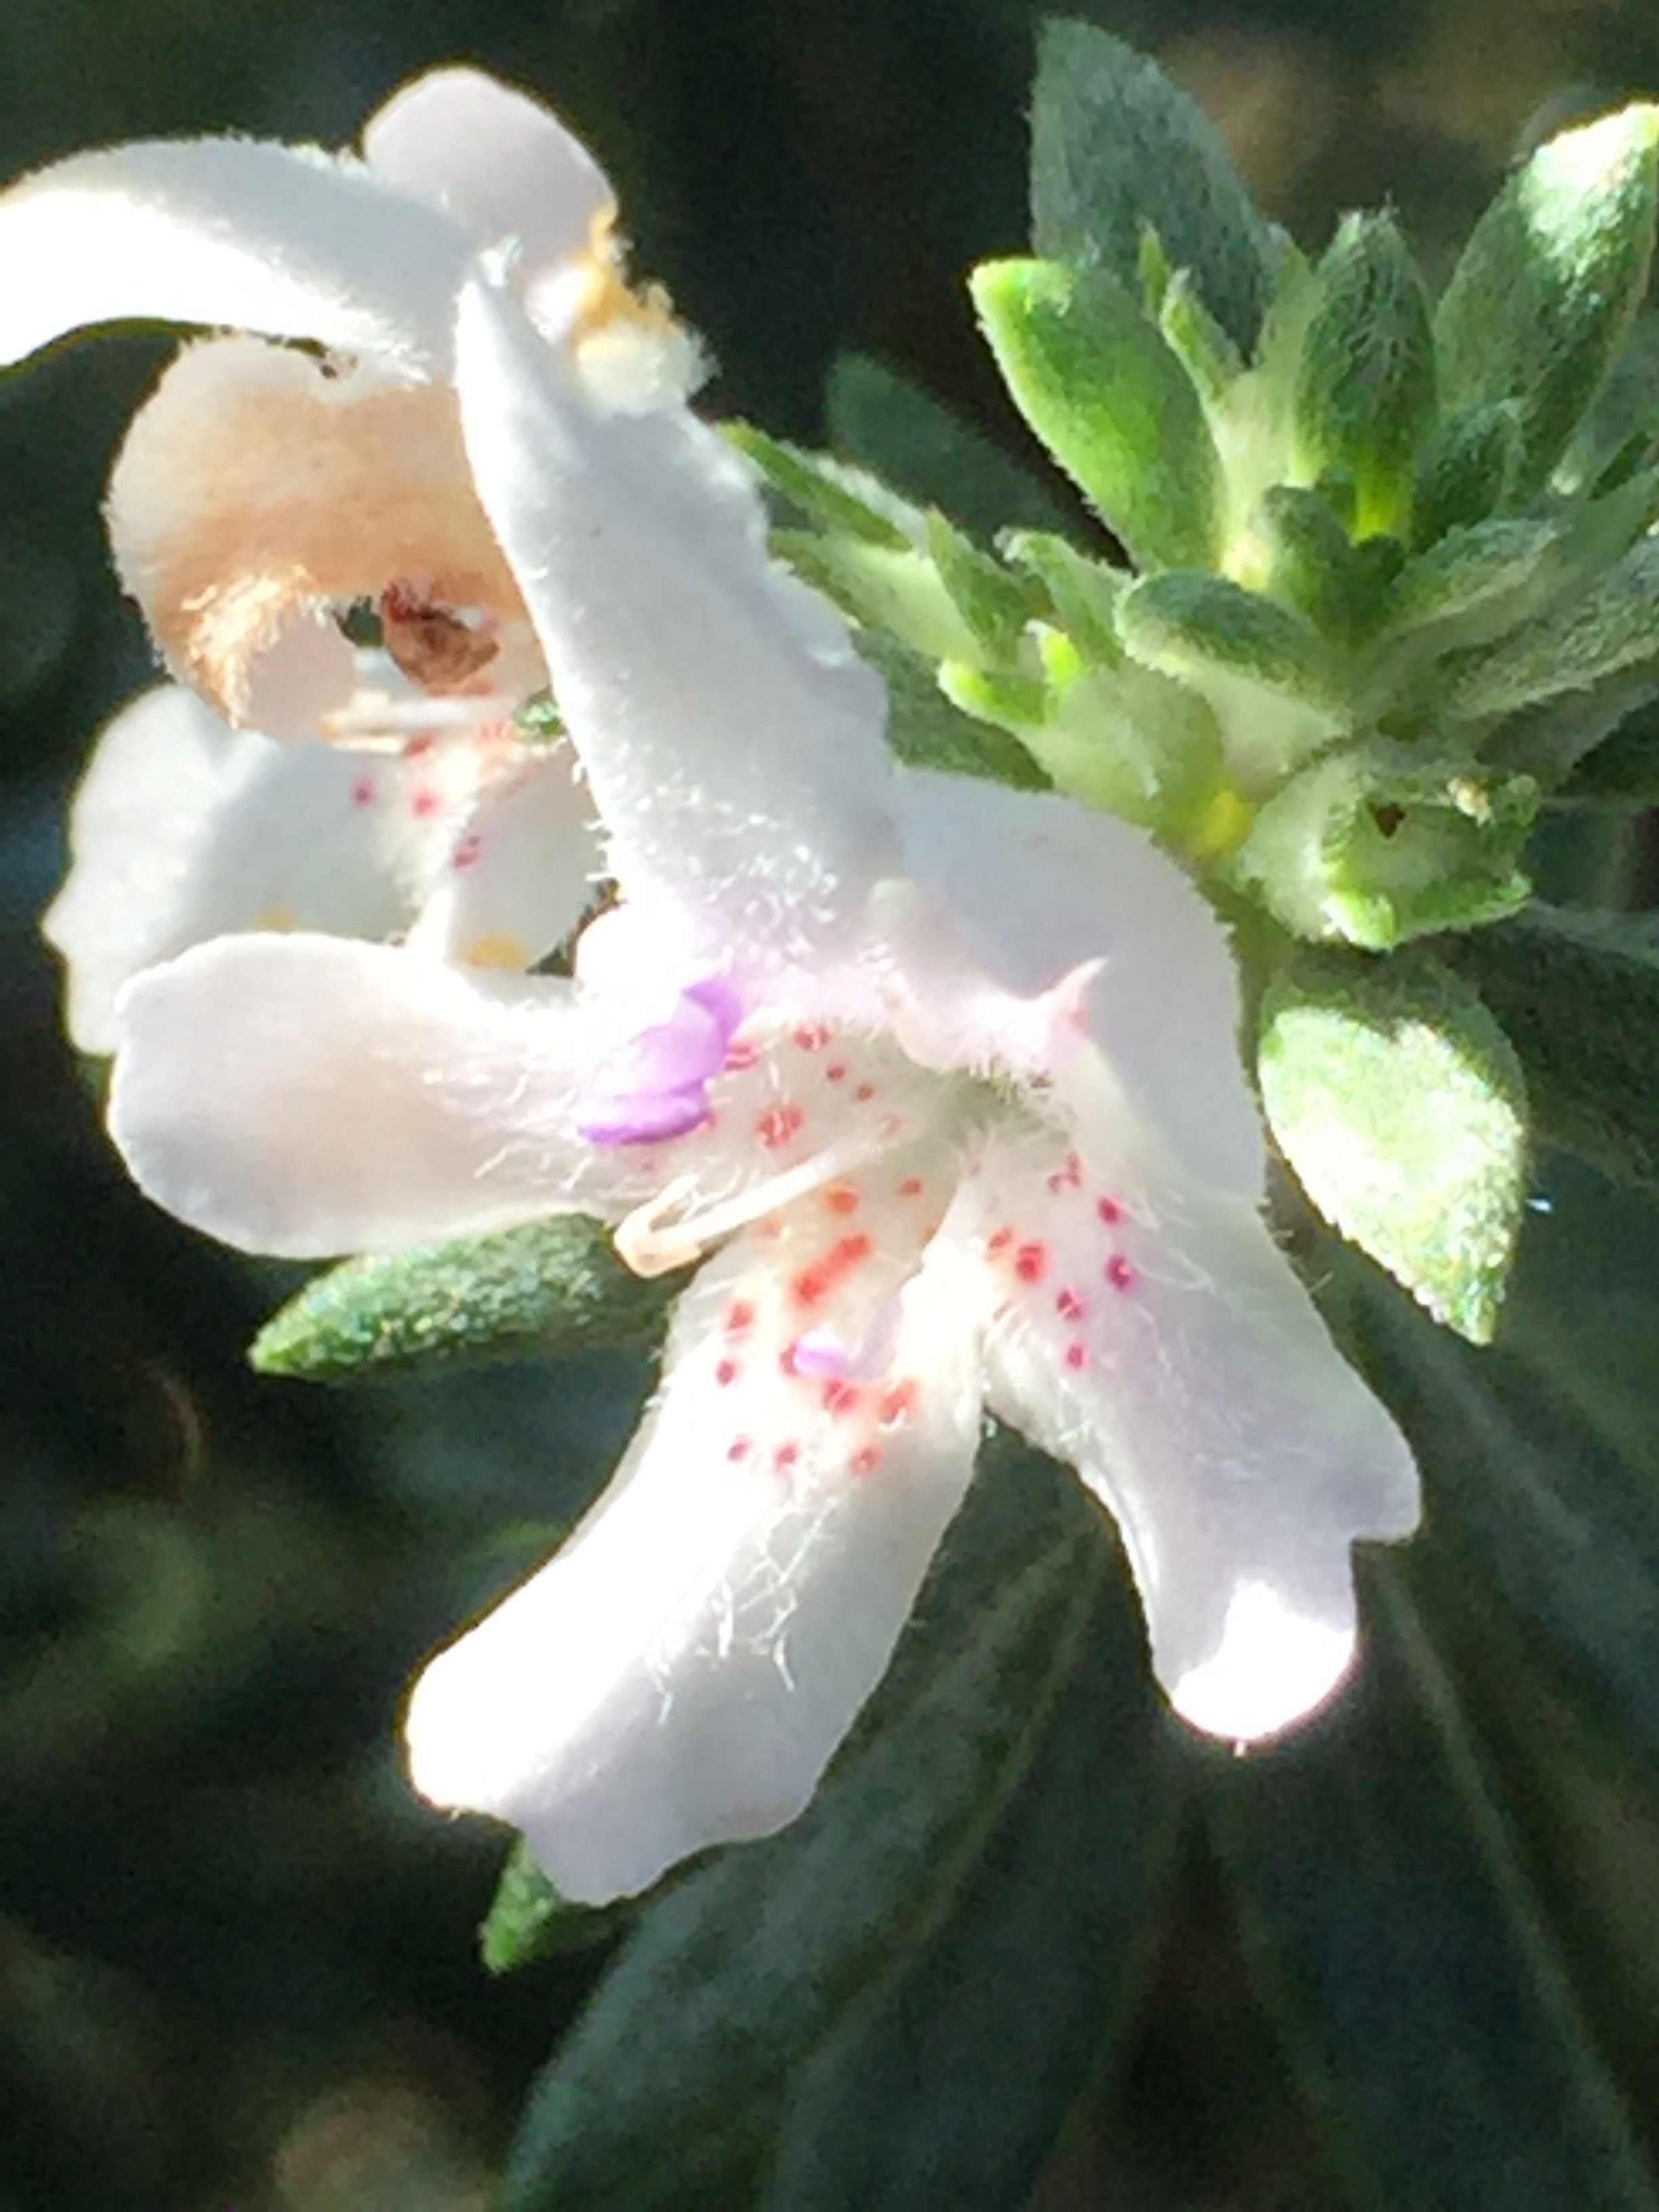 Westringia fruticosa  or Coast Rosemary - an Australian plant that does well here in full sun with little water.